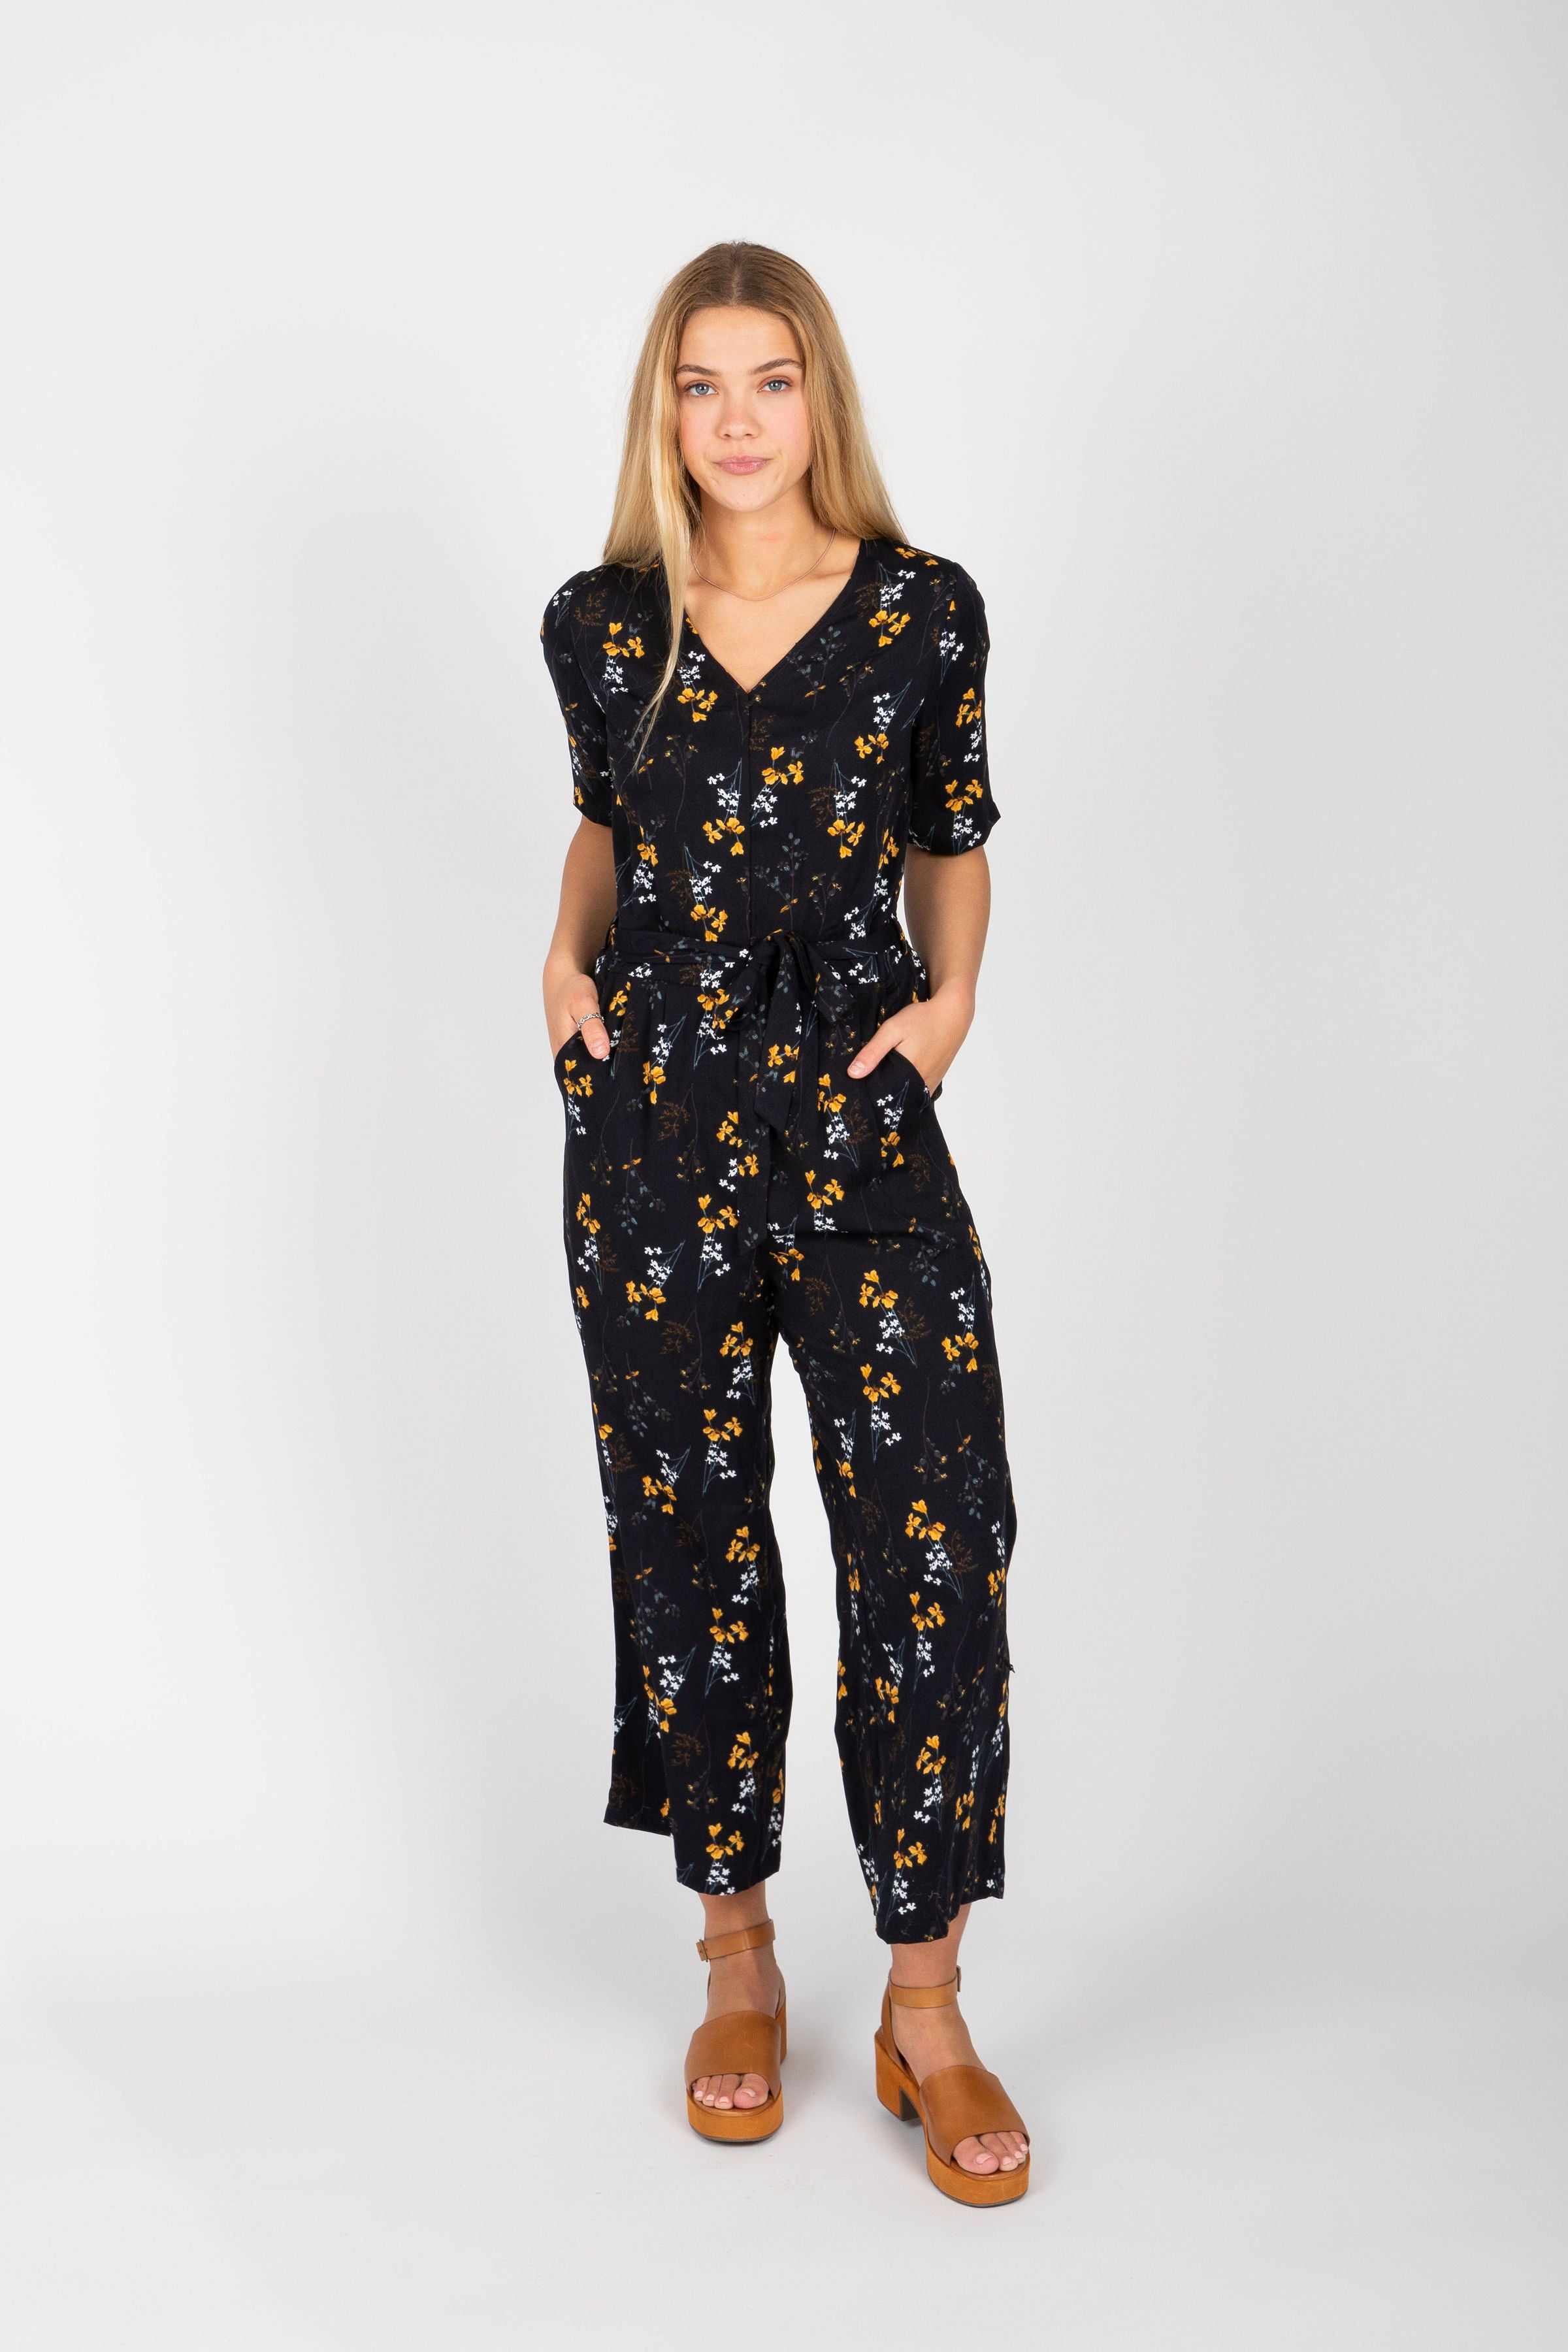 Piper & Scoot: The Elliot Floral Tie Jumpsuit in Black